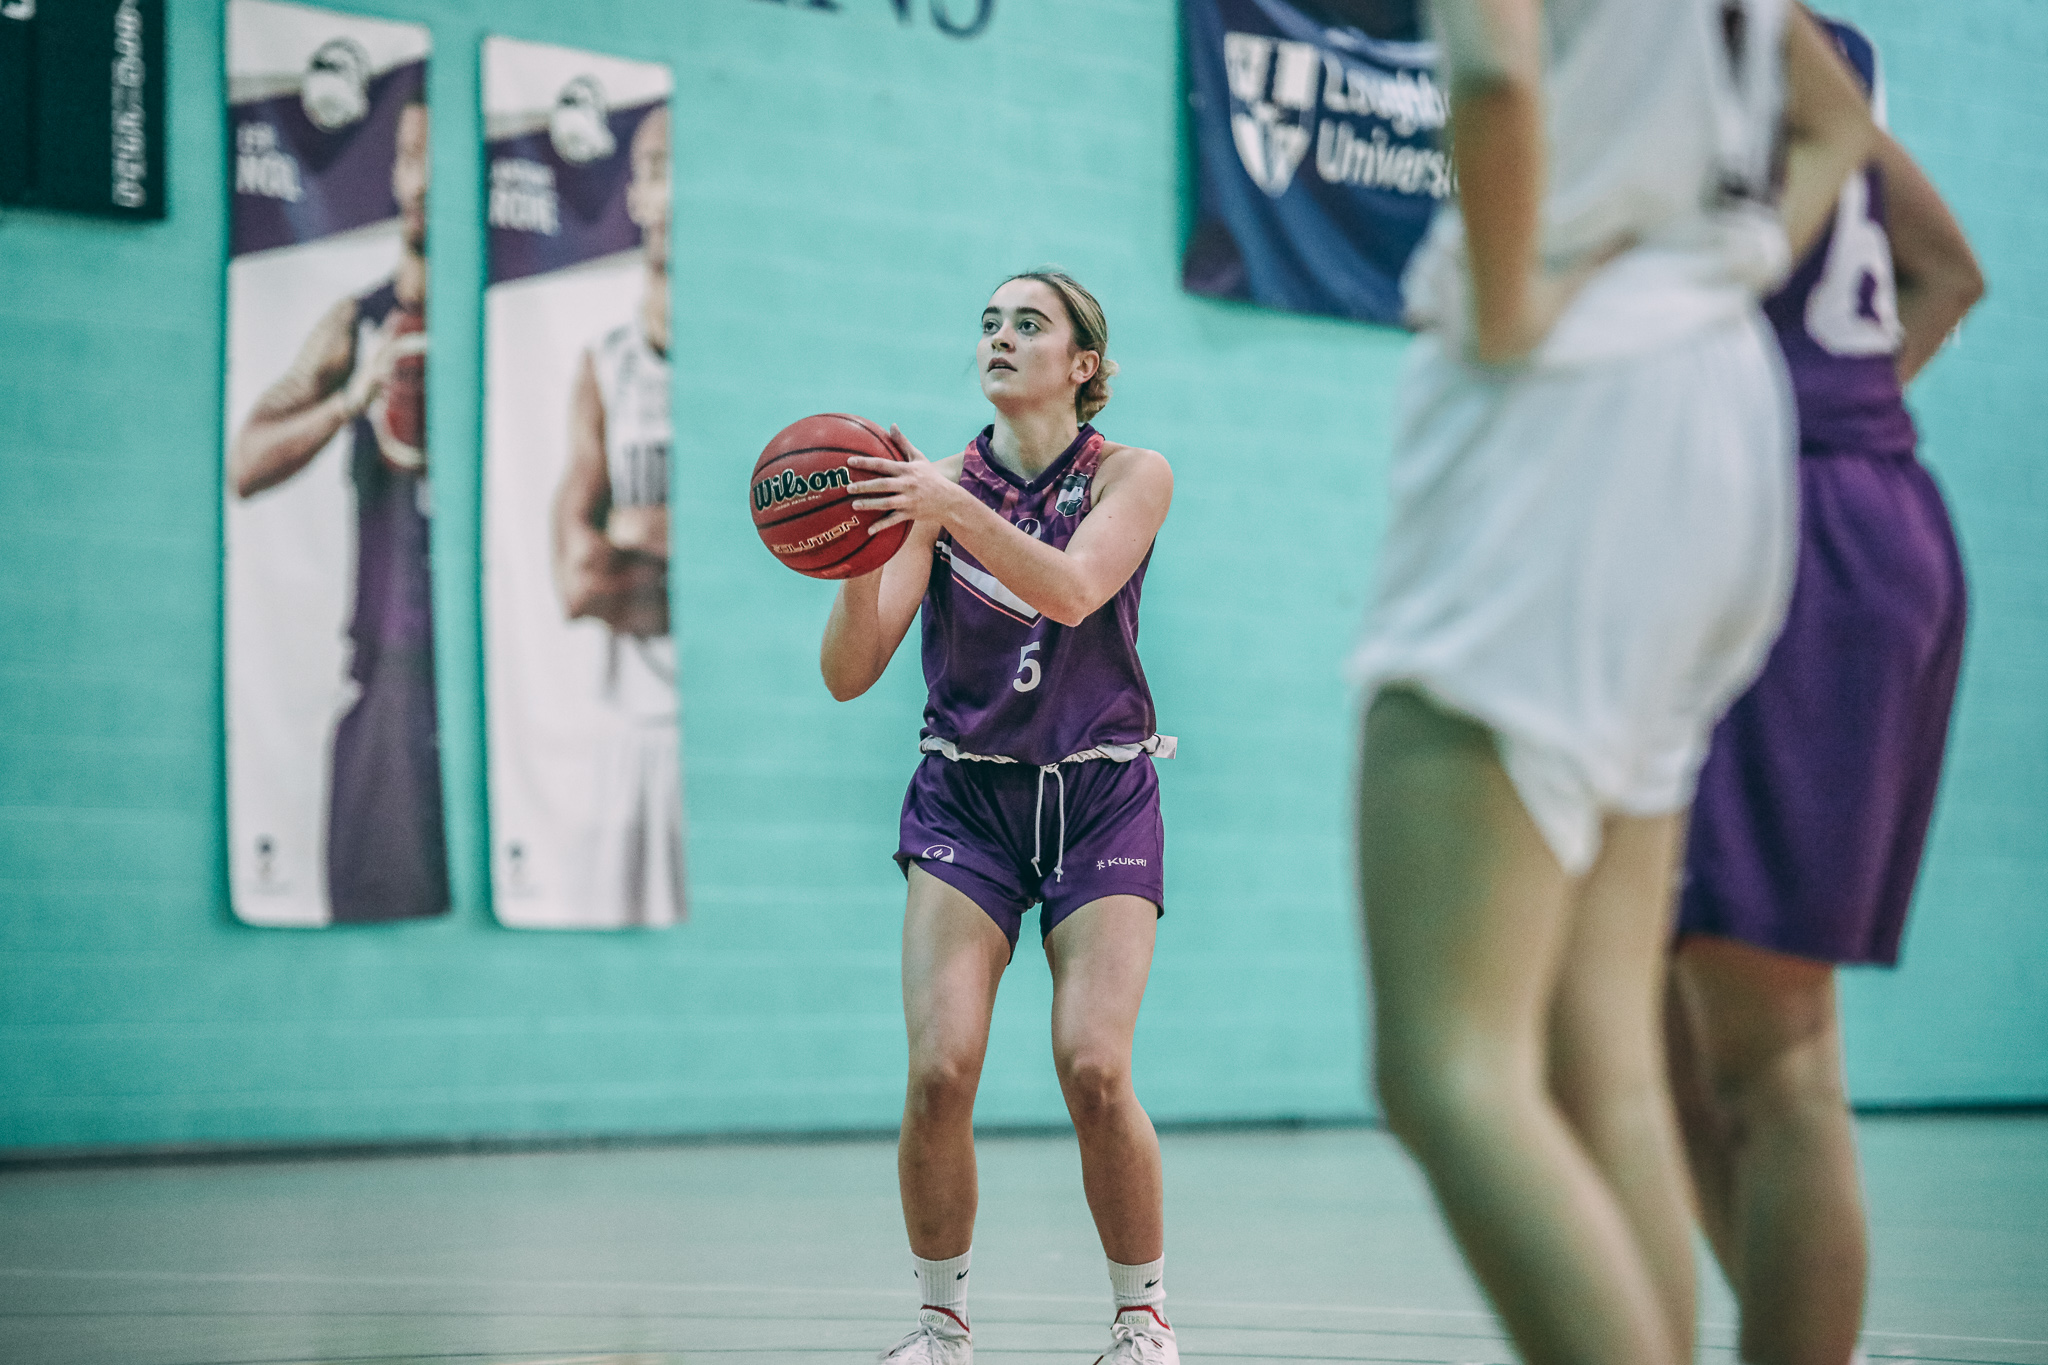 Loughborough Women win at home against Cardiff Met Archers